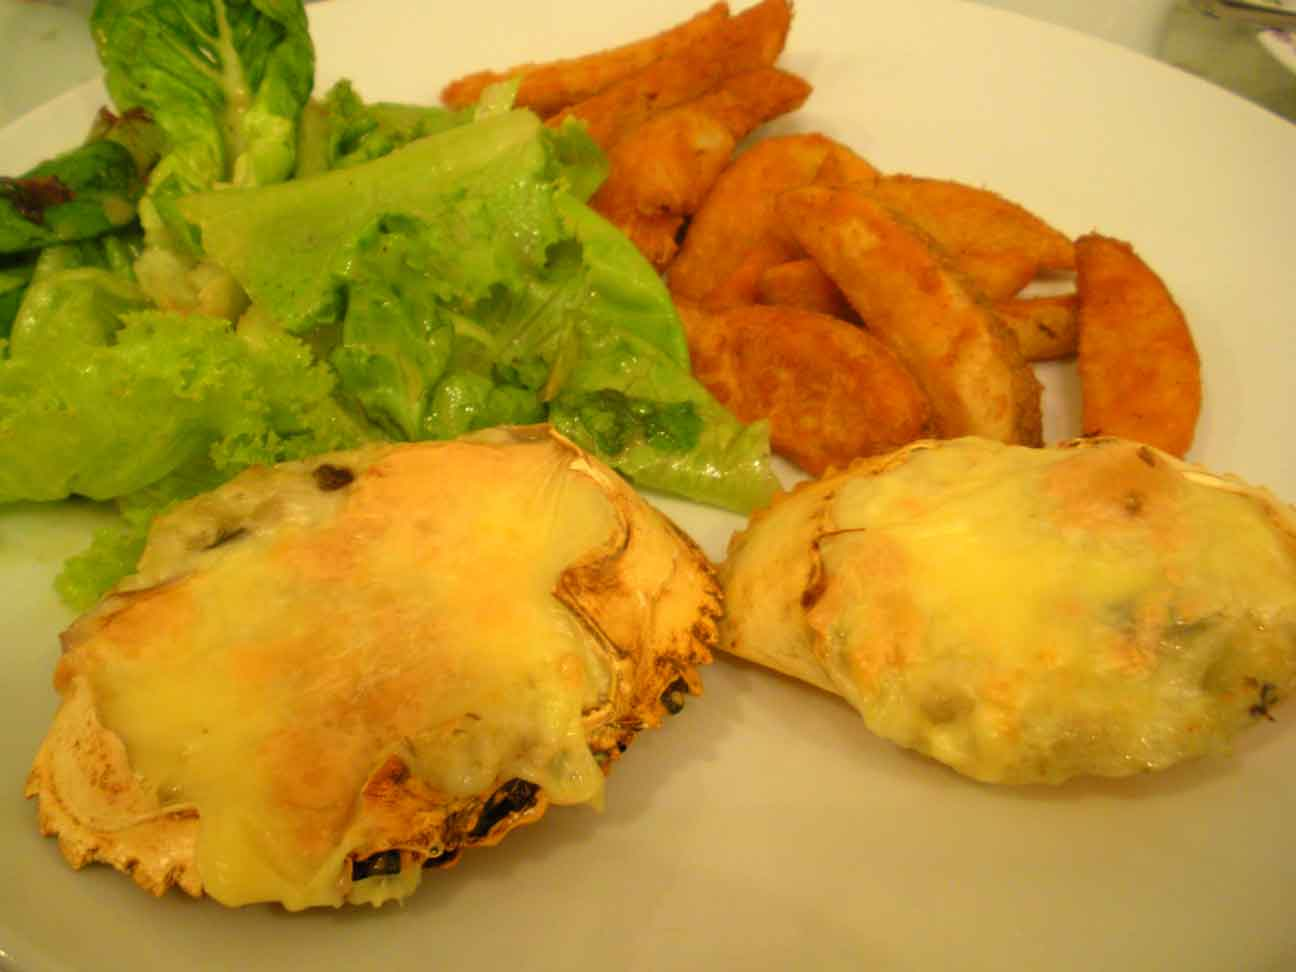 Annabelle's Place - stuffed crabs